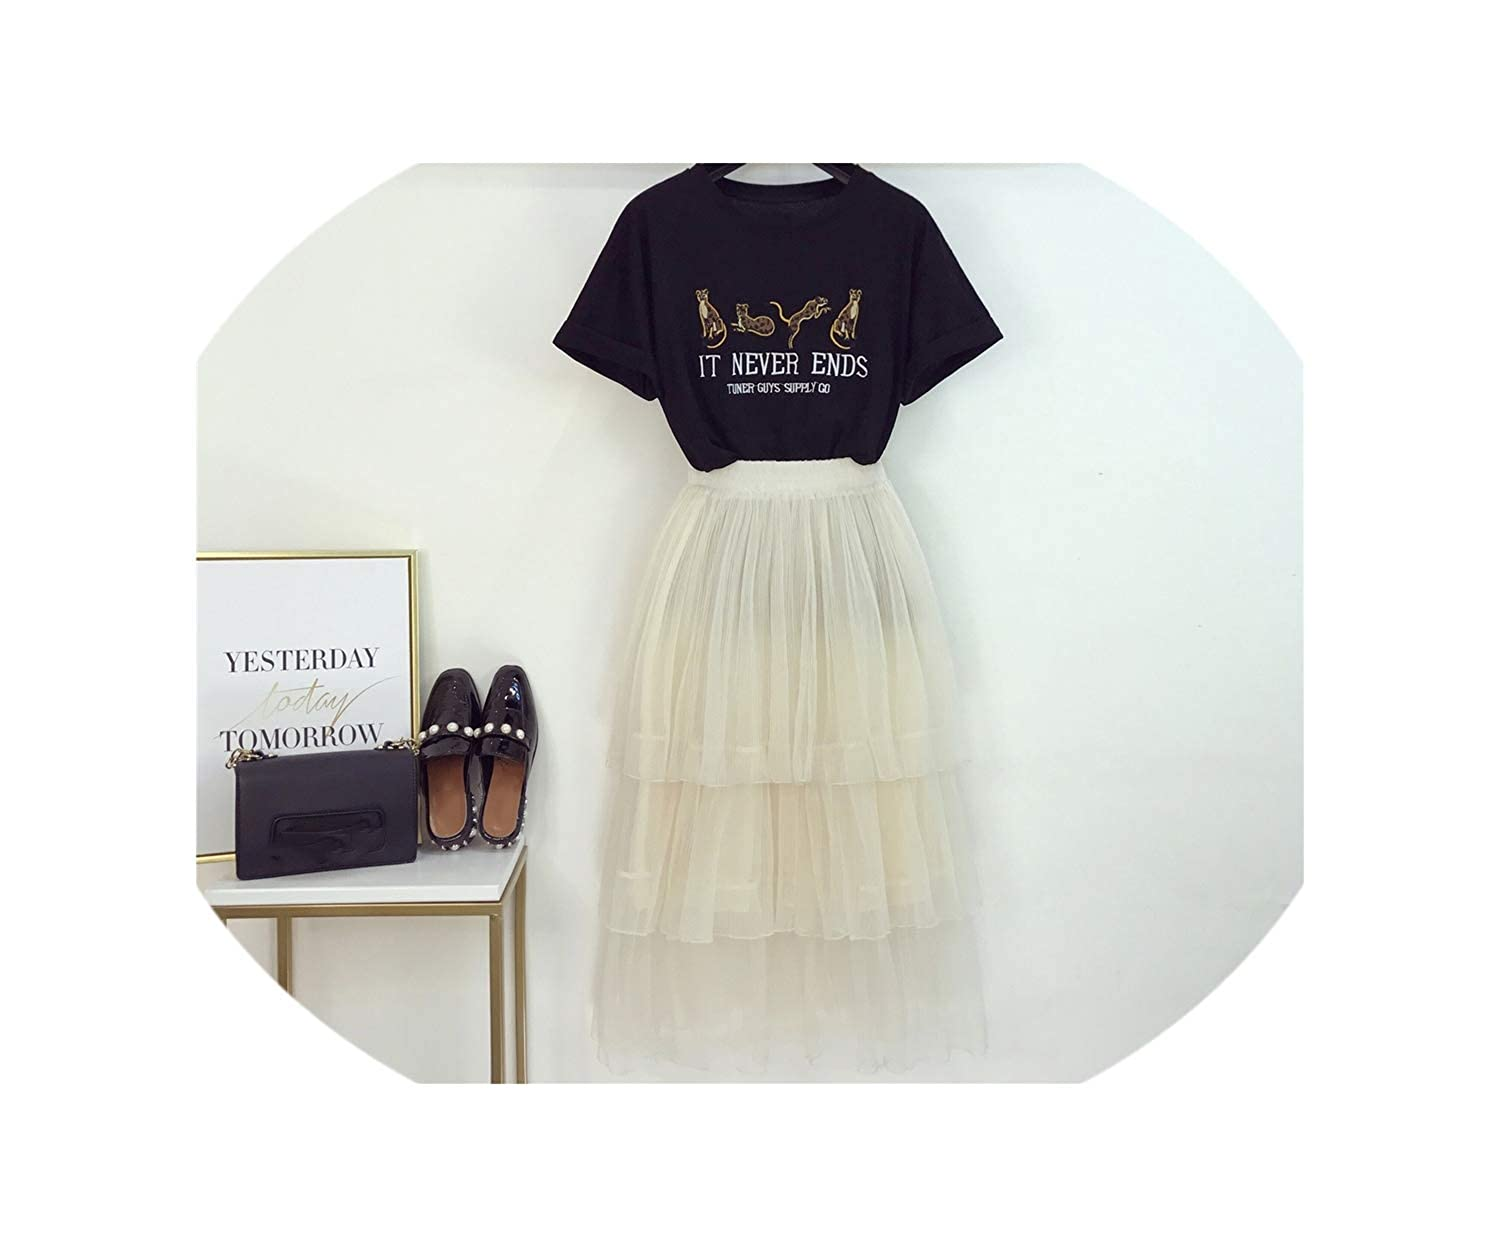 Black enjoypeak Summer Long Dress Women New Embroidery Little Leopard TShirt + Mesh Cake Skirt Playful